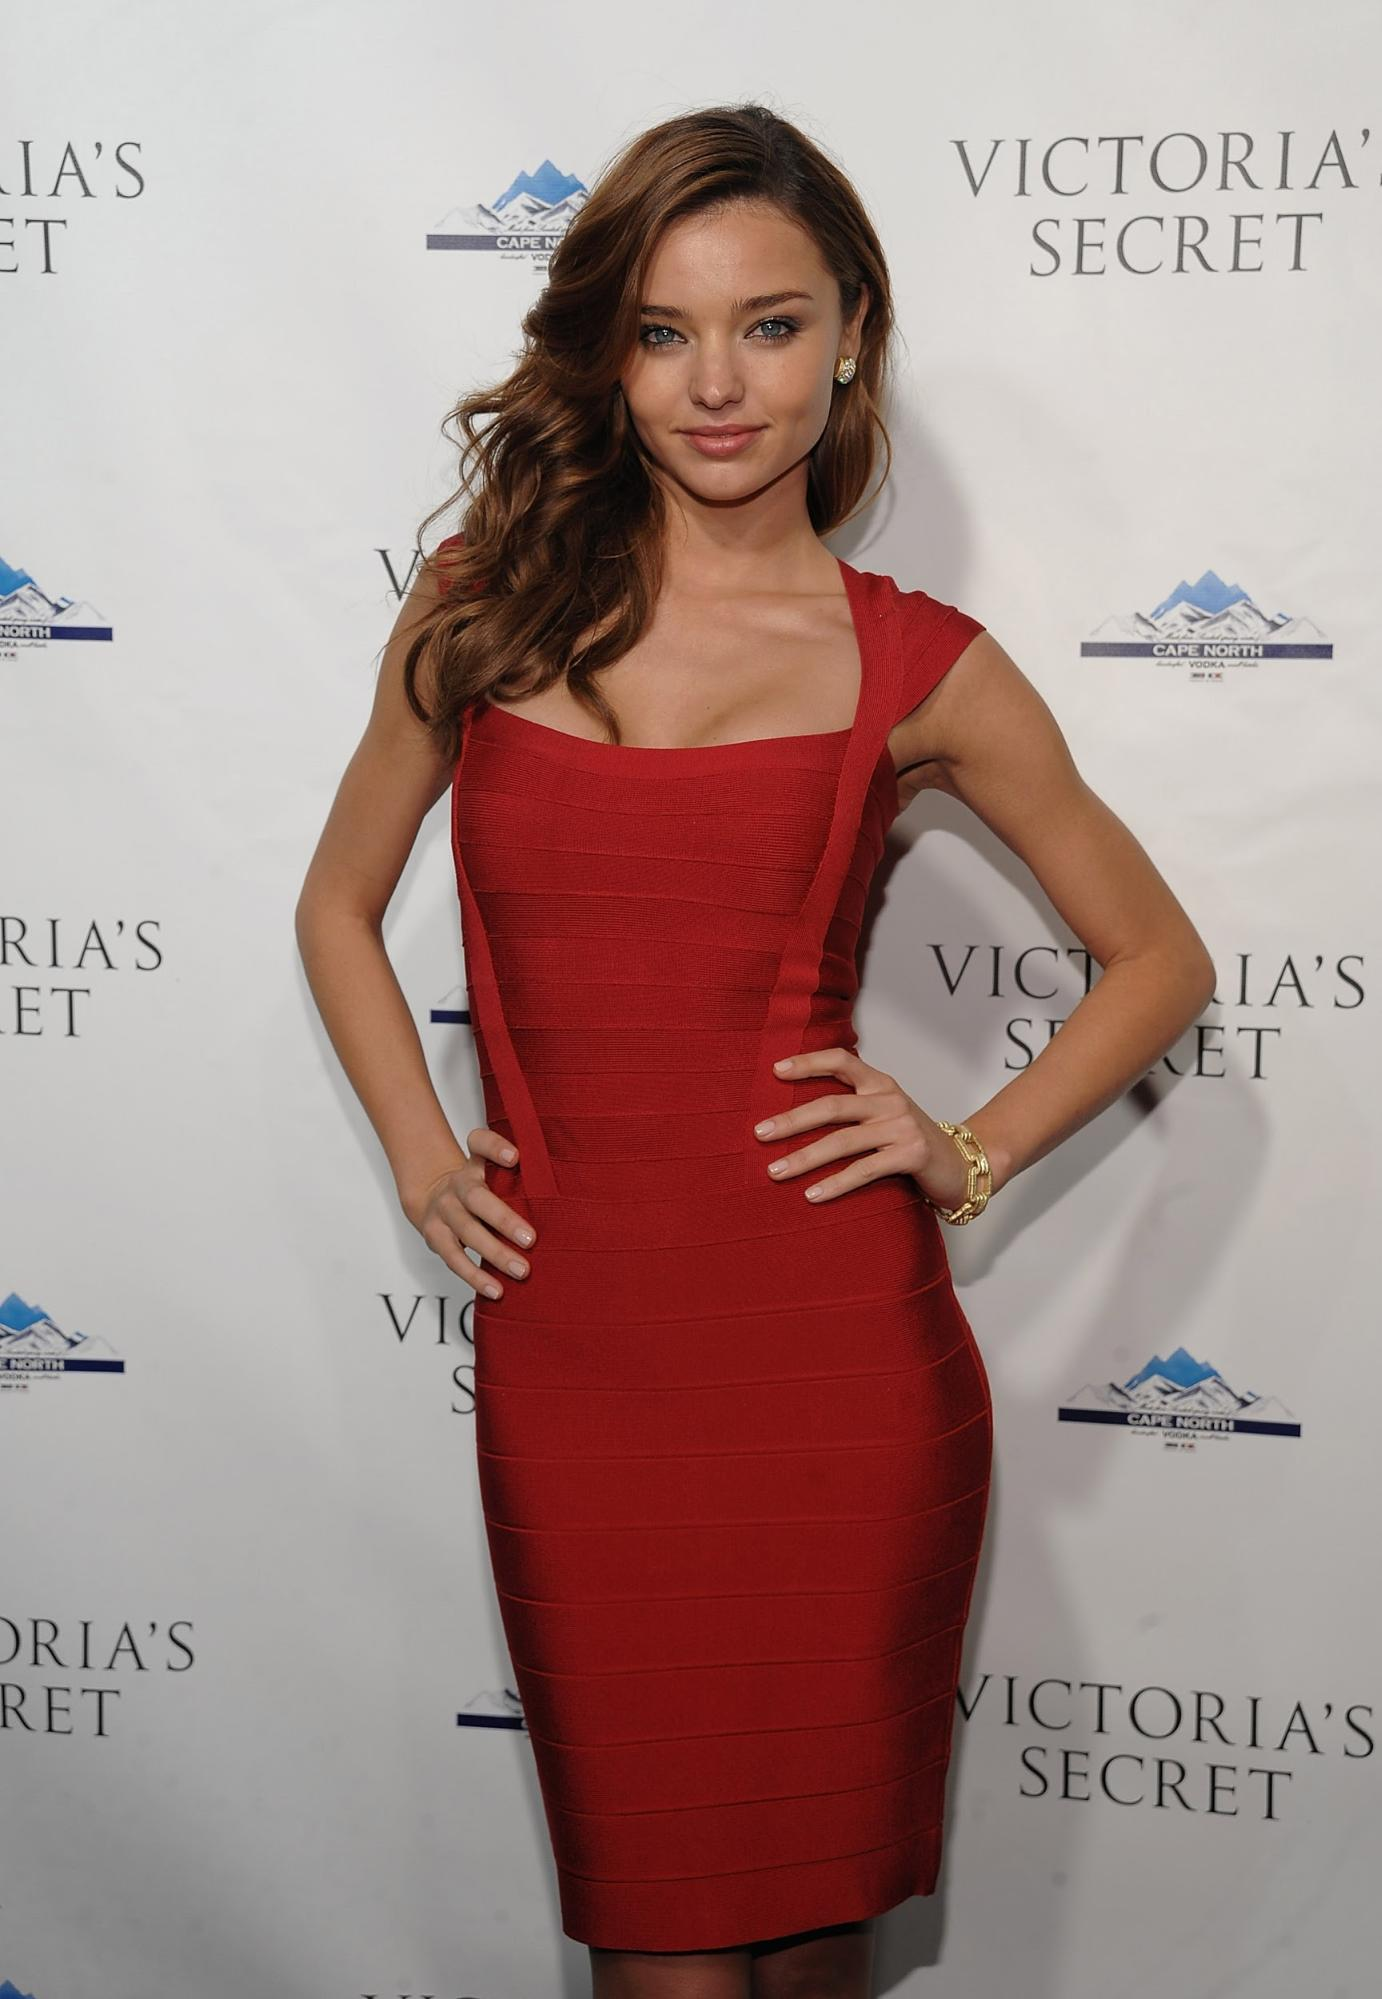 Miranda Kerr is a big fan of the bandage dress, she wore this sexy scarlet number to the opening of a new Victoria's Secret store. Credit: Getty Images - WireImage